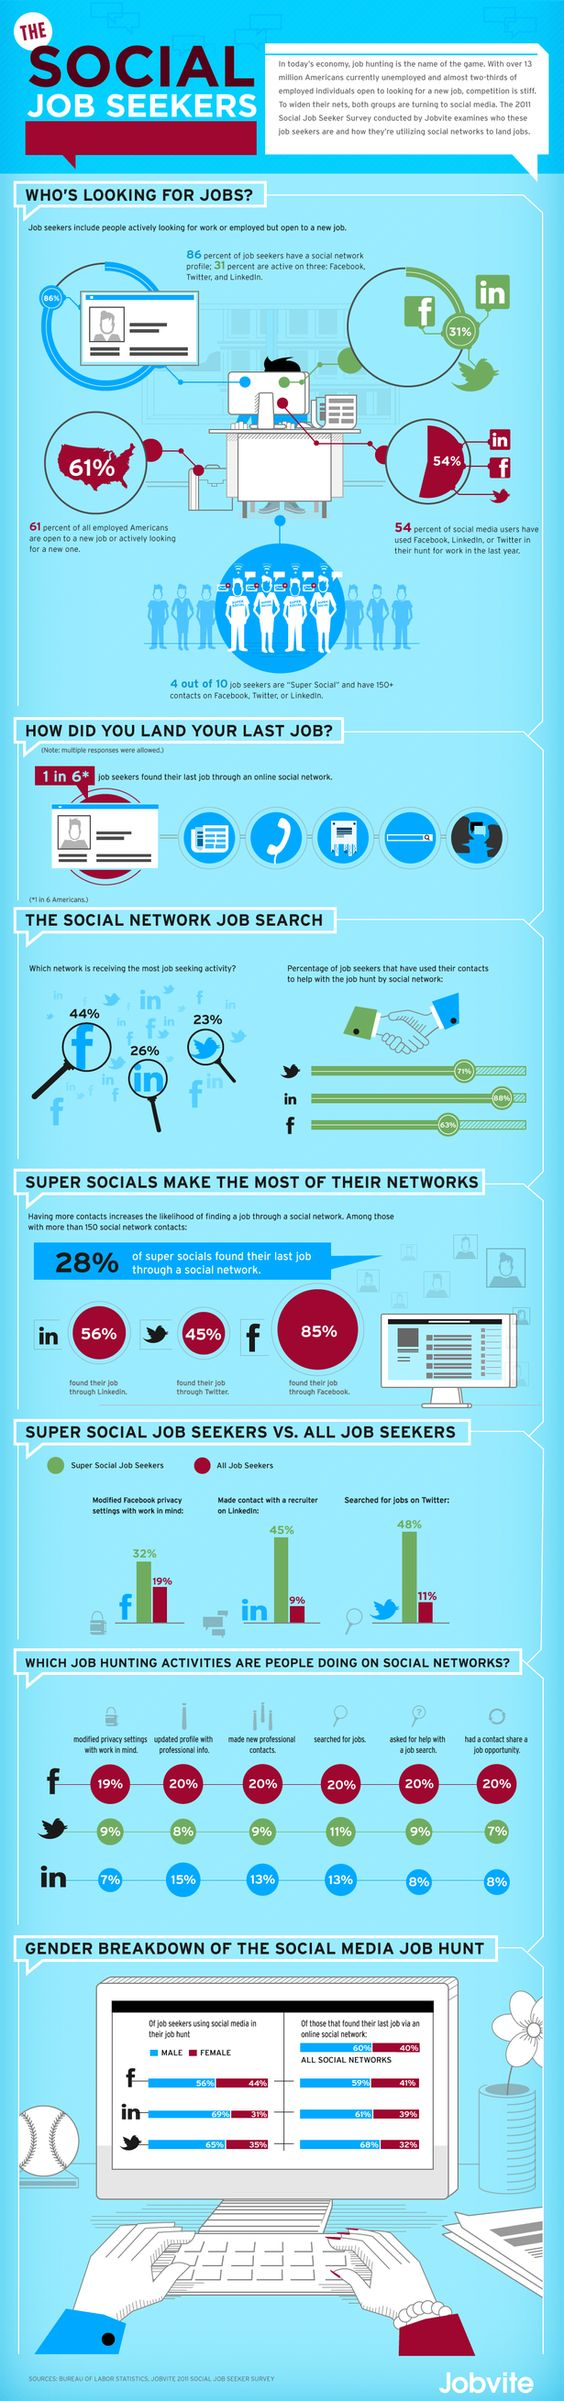 The Social Job Seeker [Infographic]